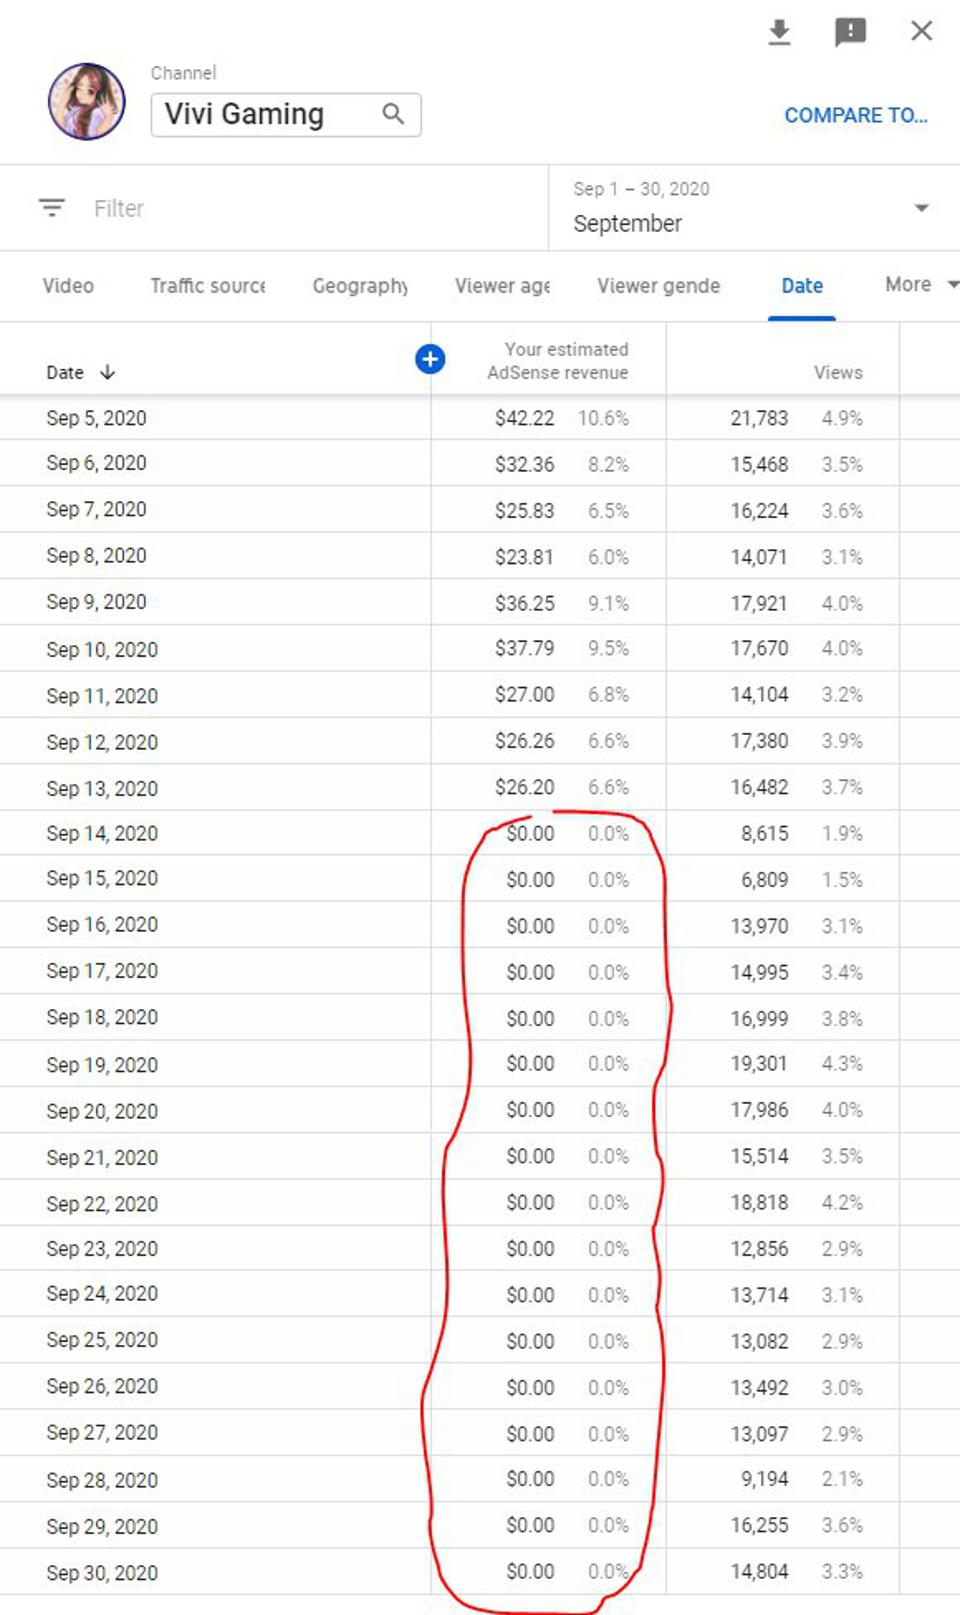 The Vivi Gaming YouTube channel shows no major change in traffic, but a complete and sudden drop in revenue.